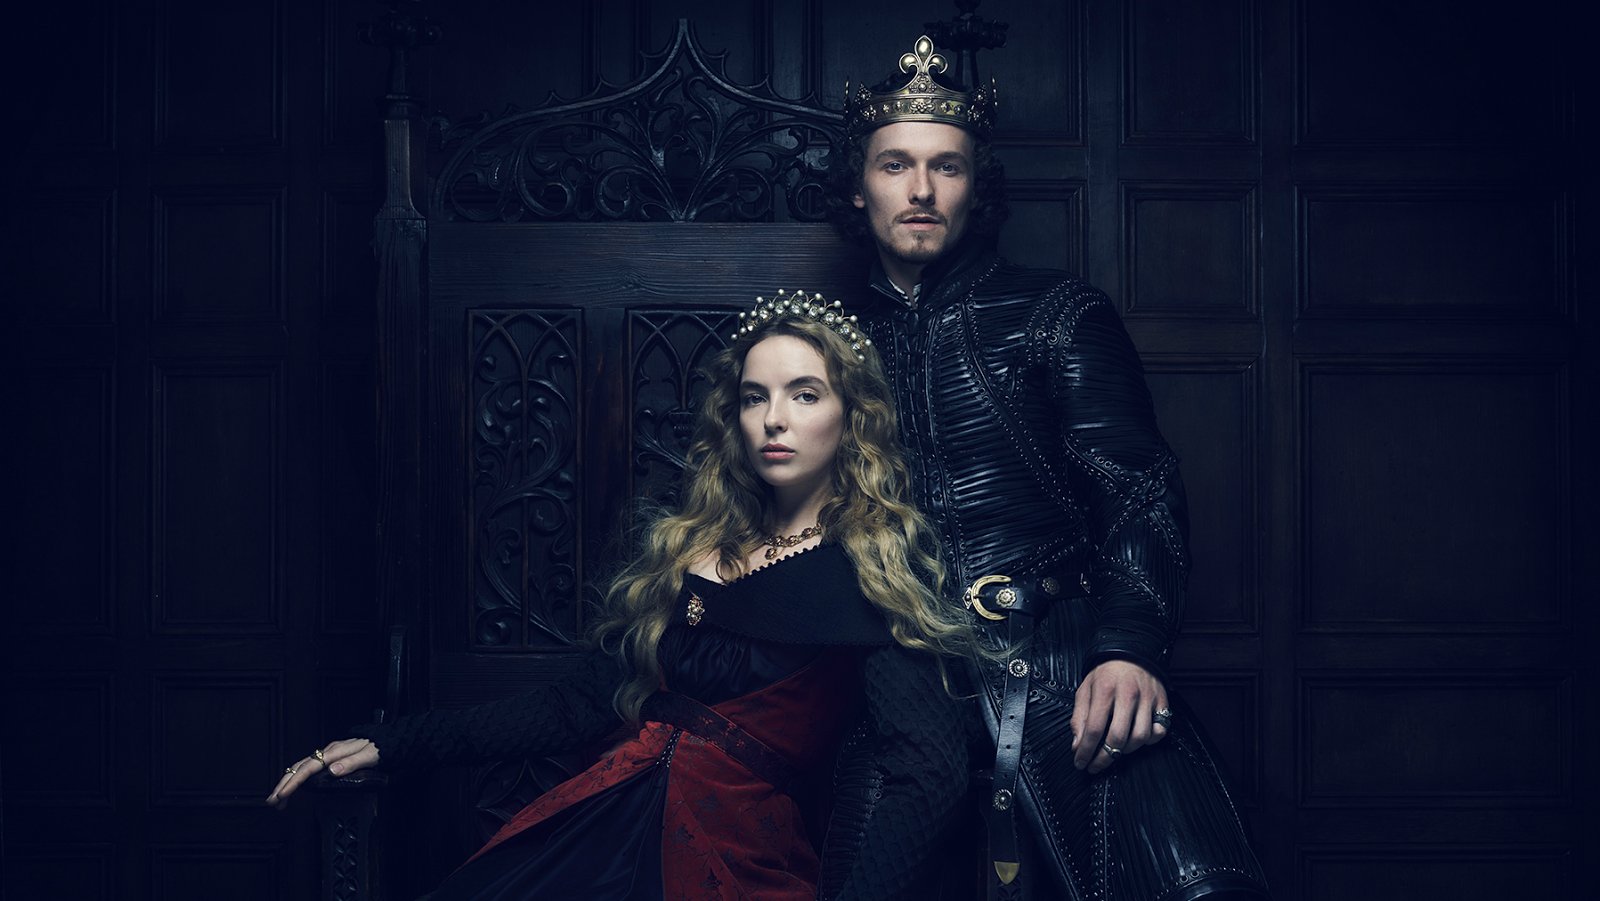 Stars of The White Princess, Jodie Comer, and Jacob Collins-Levy were snubbed by the 2017 Emmy nominations